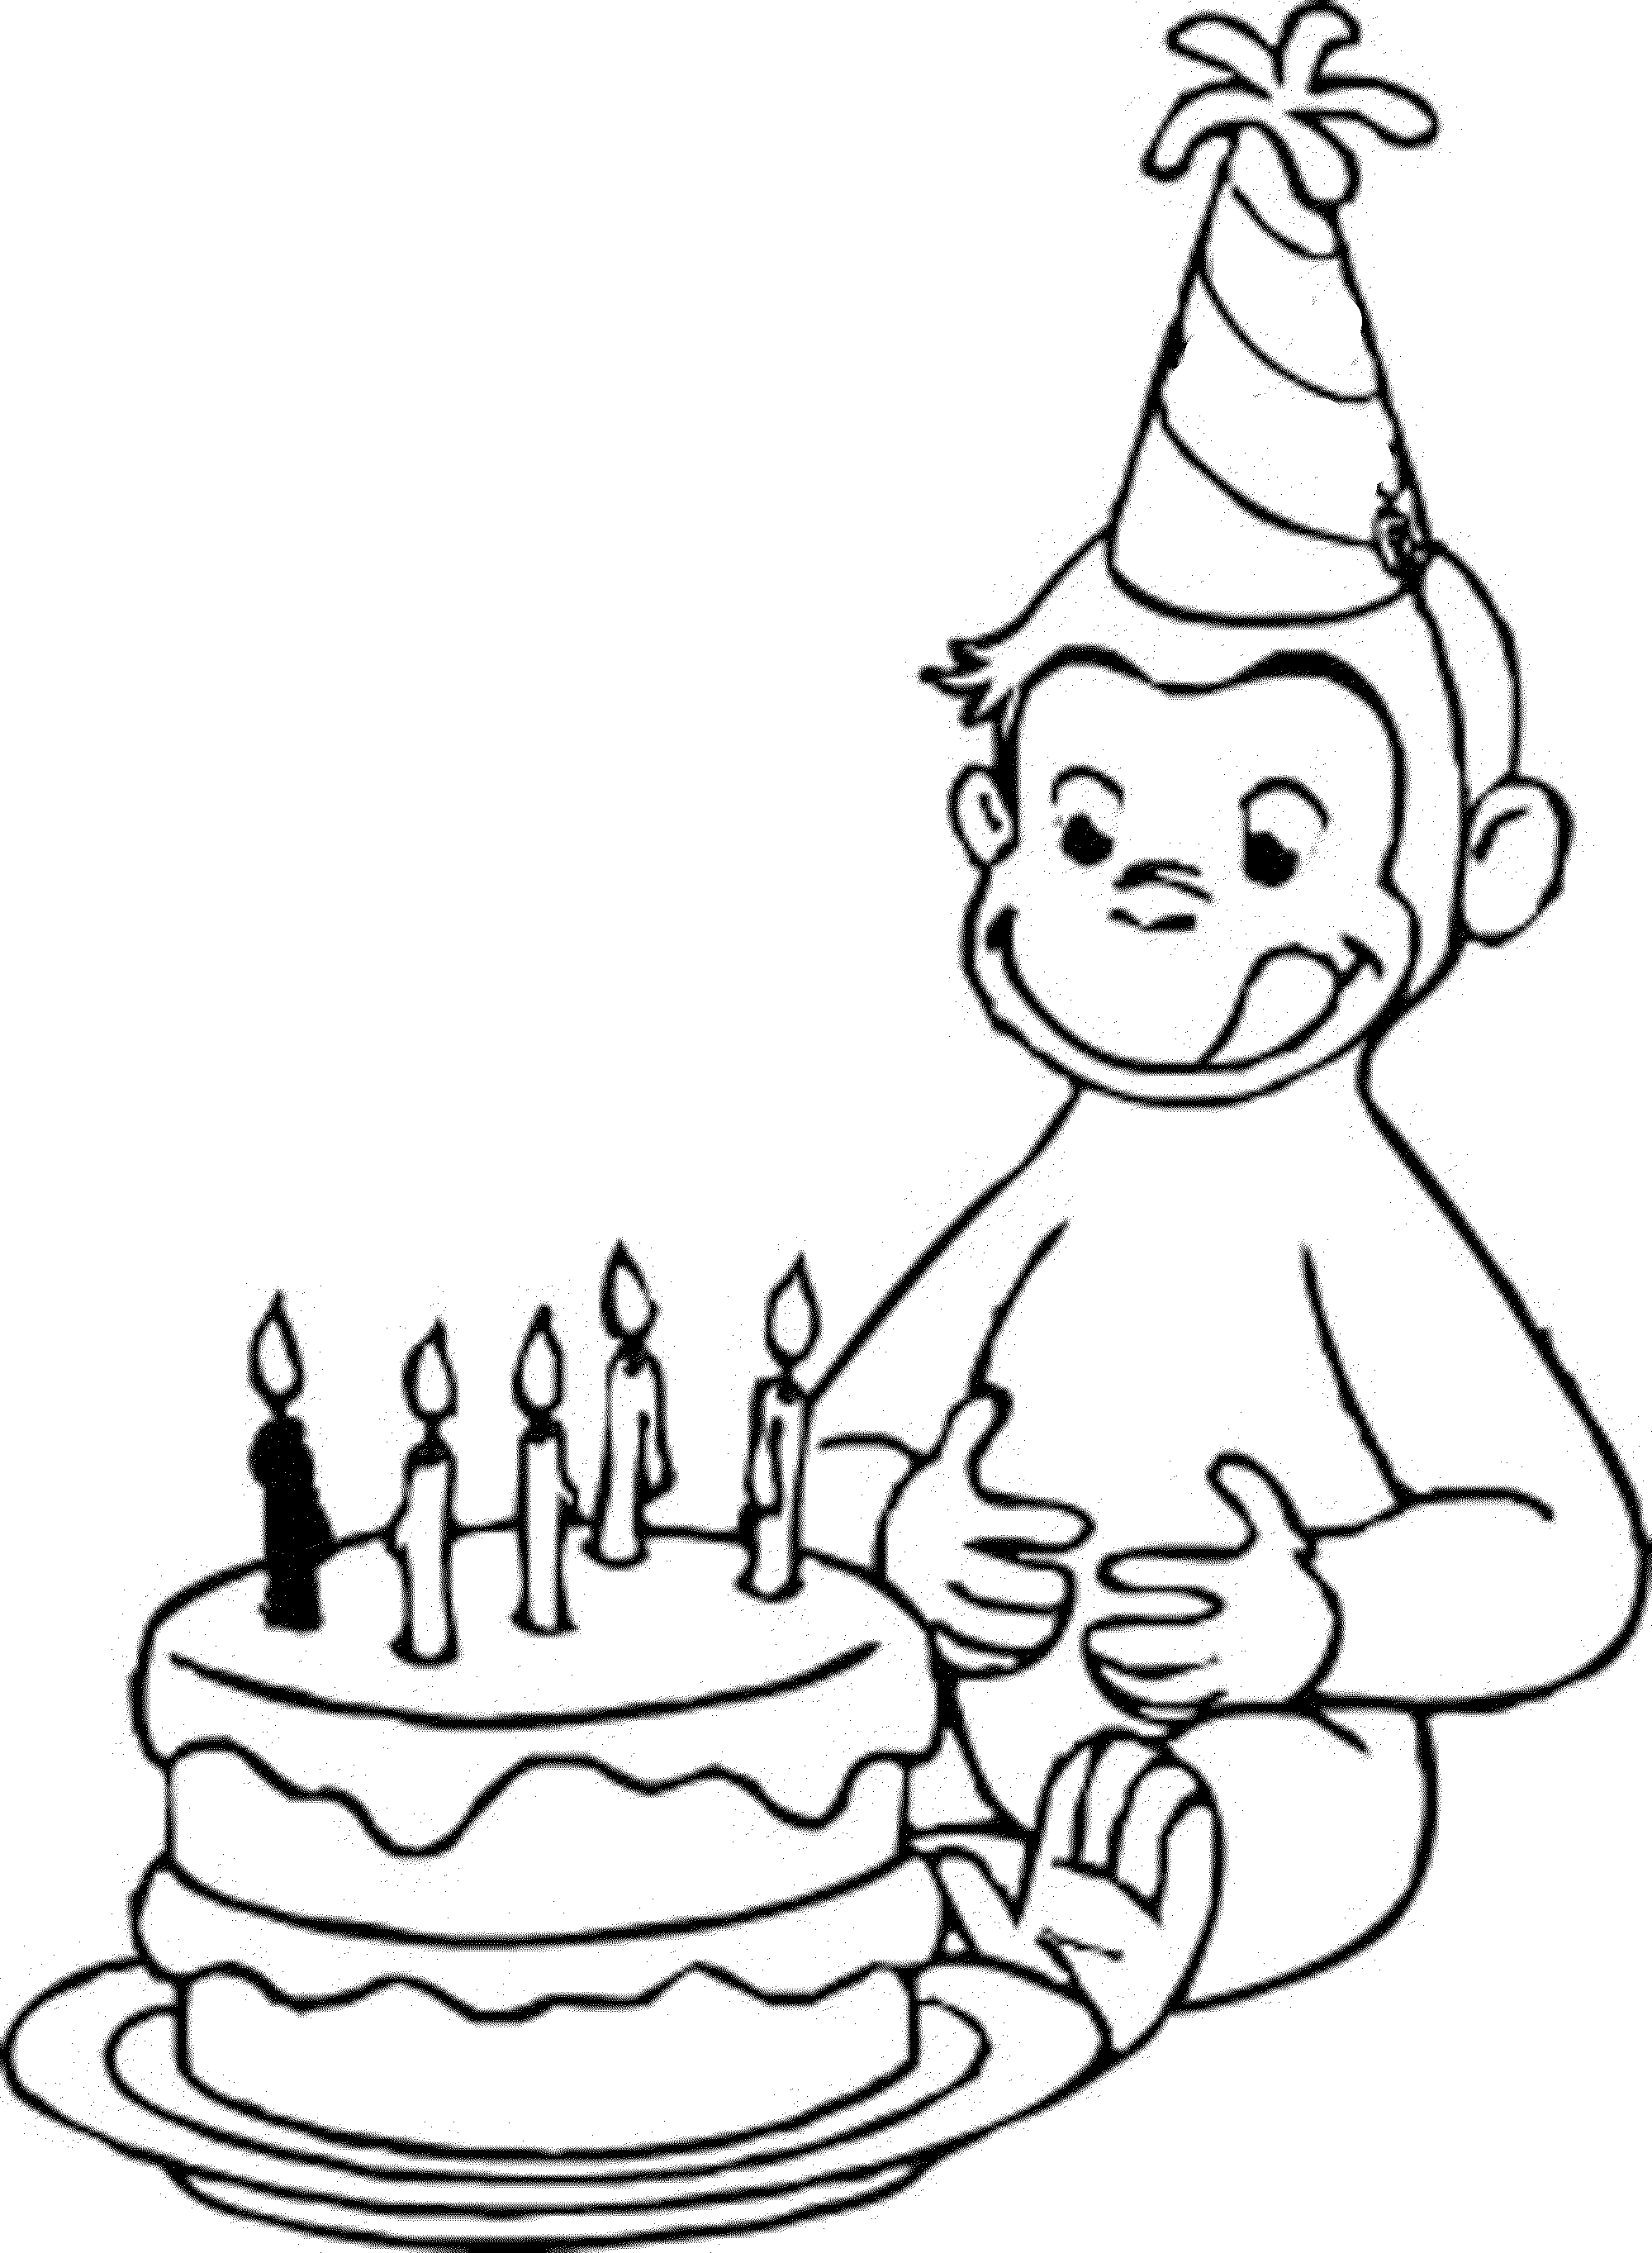 2000x2727 Happy Birthday Coloring Pages For Kids